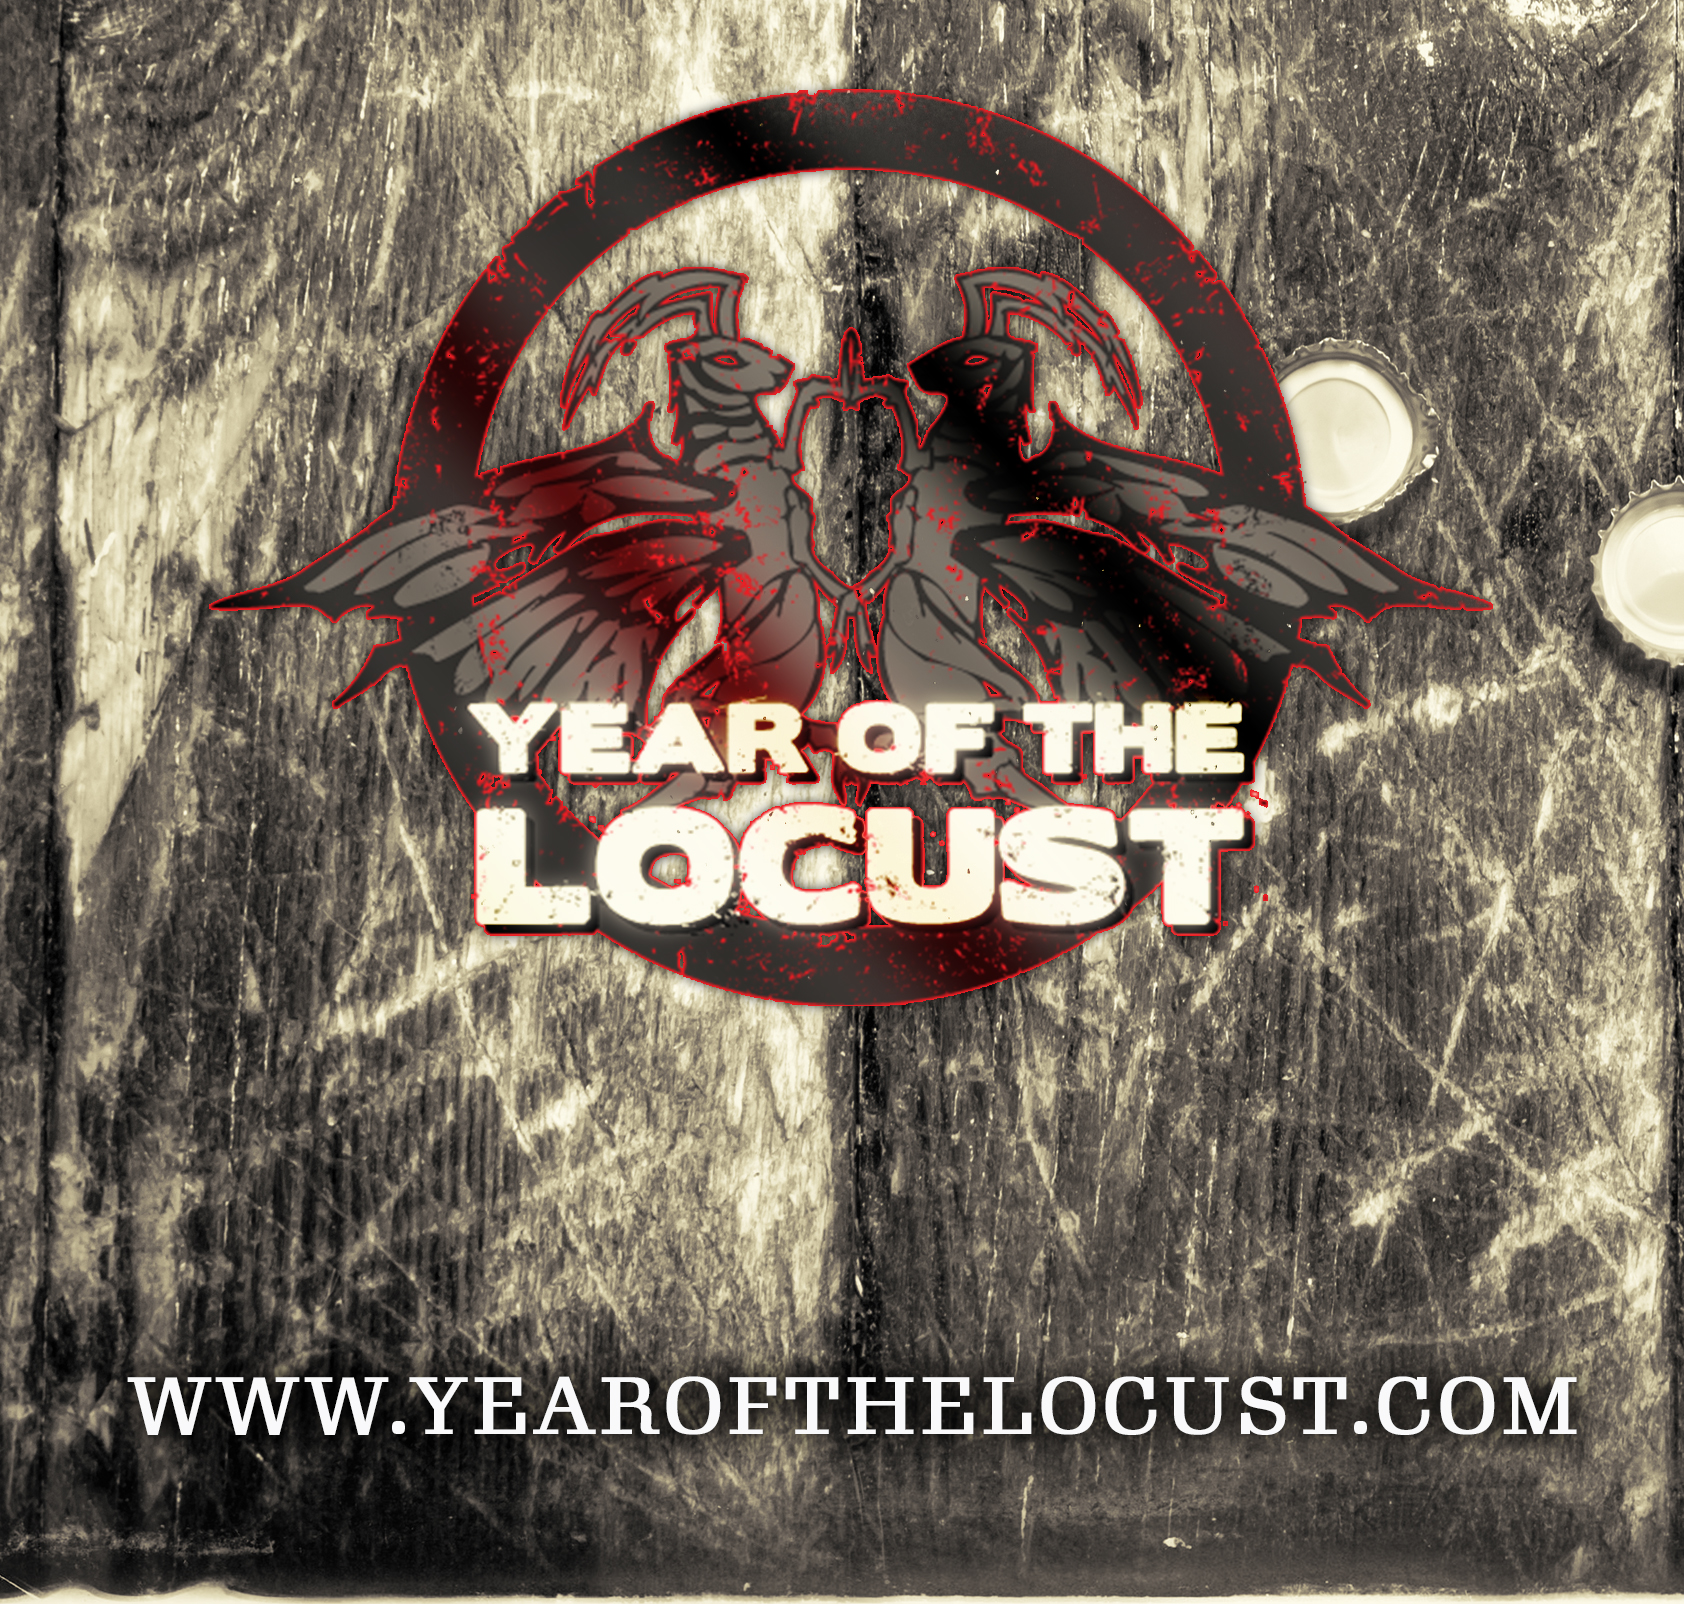 Connect with Year of the Locust     Facebook    |    Twitter    |    Instagram